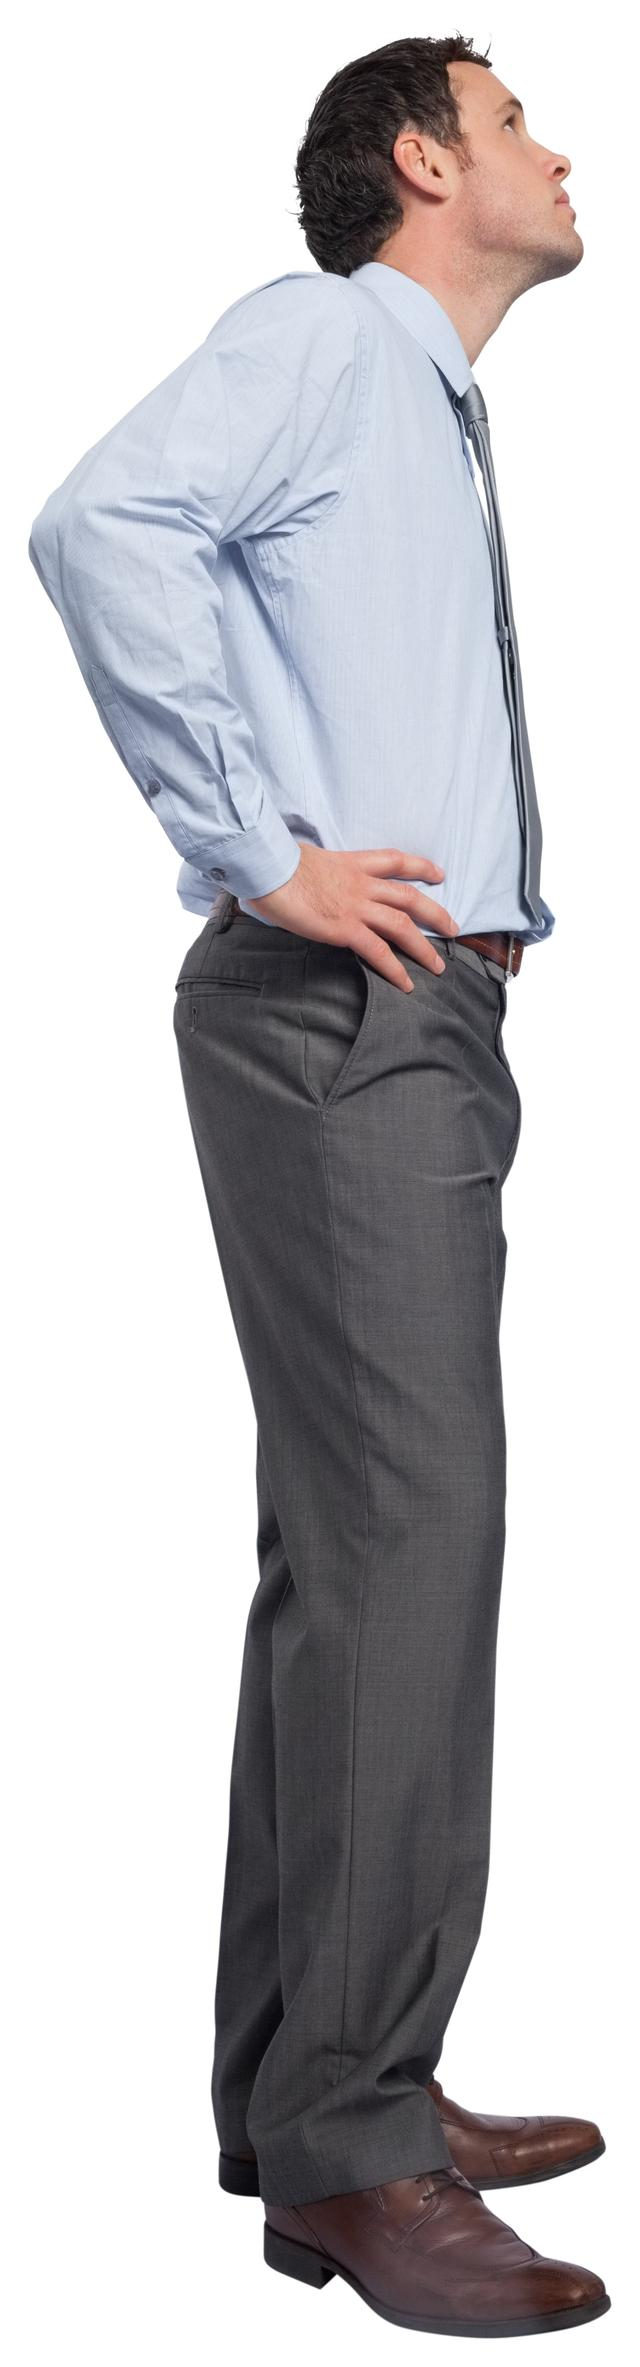 """Serious businessman with hand on hip"" stock image"